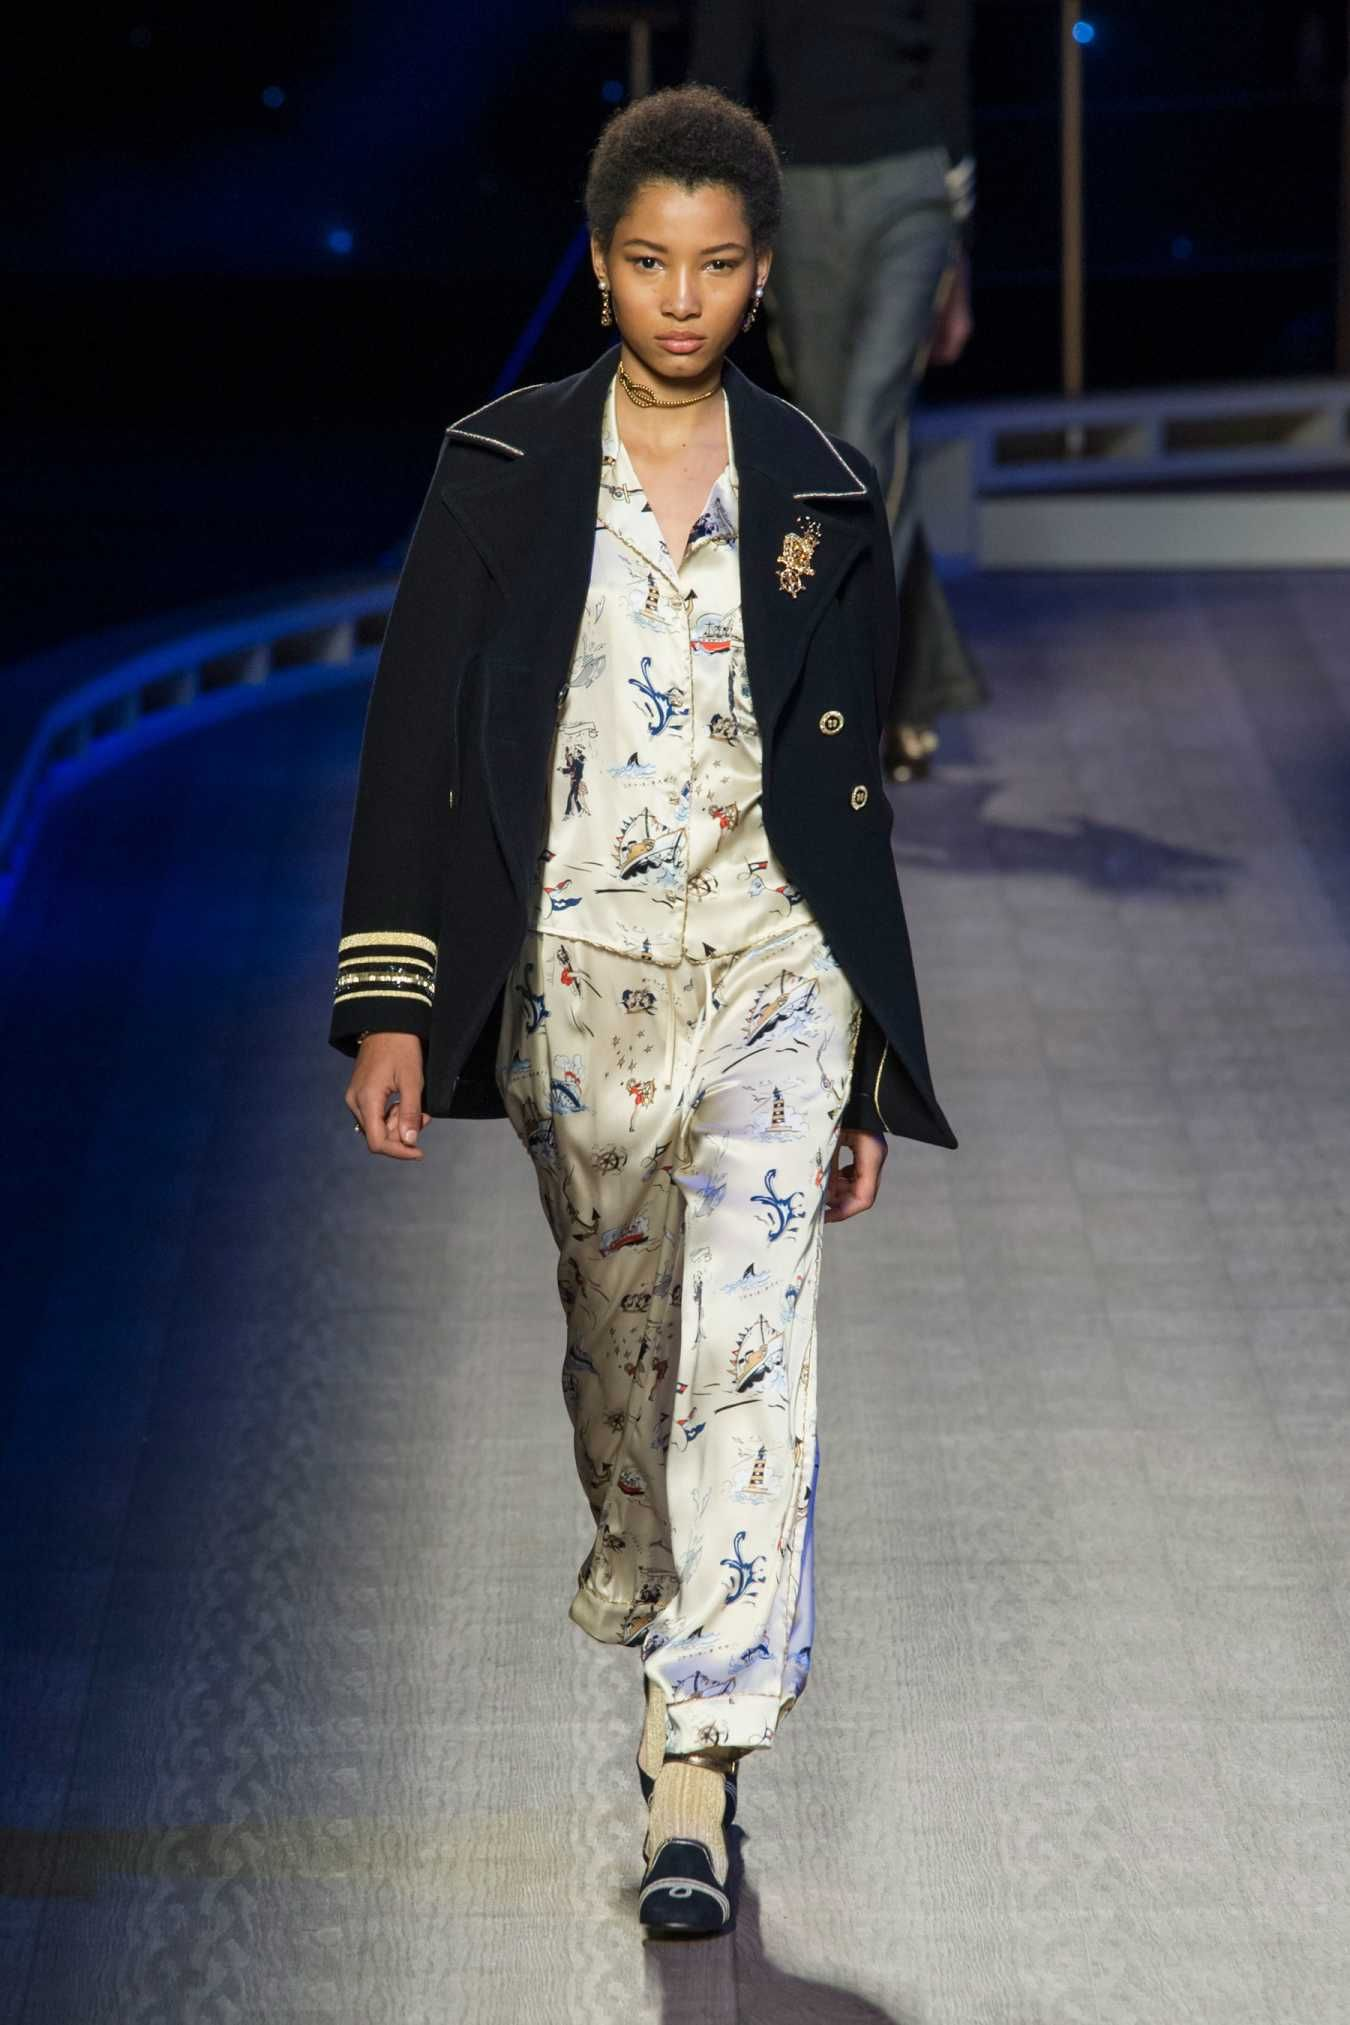 A look from Tommy Hilfiger's fall 2016 collection. Photo: Imaxtree.